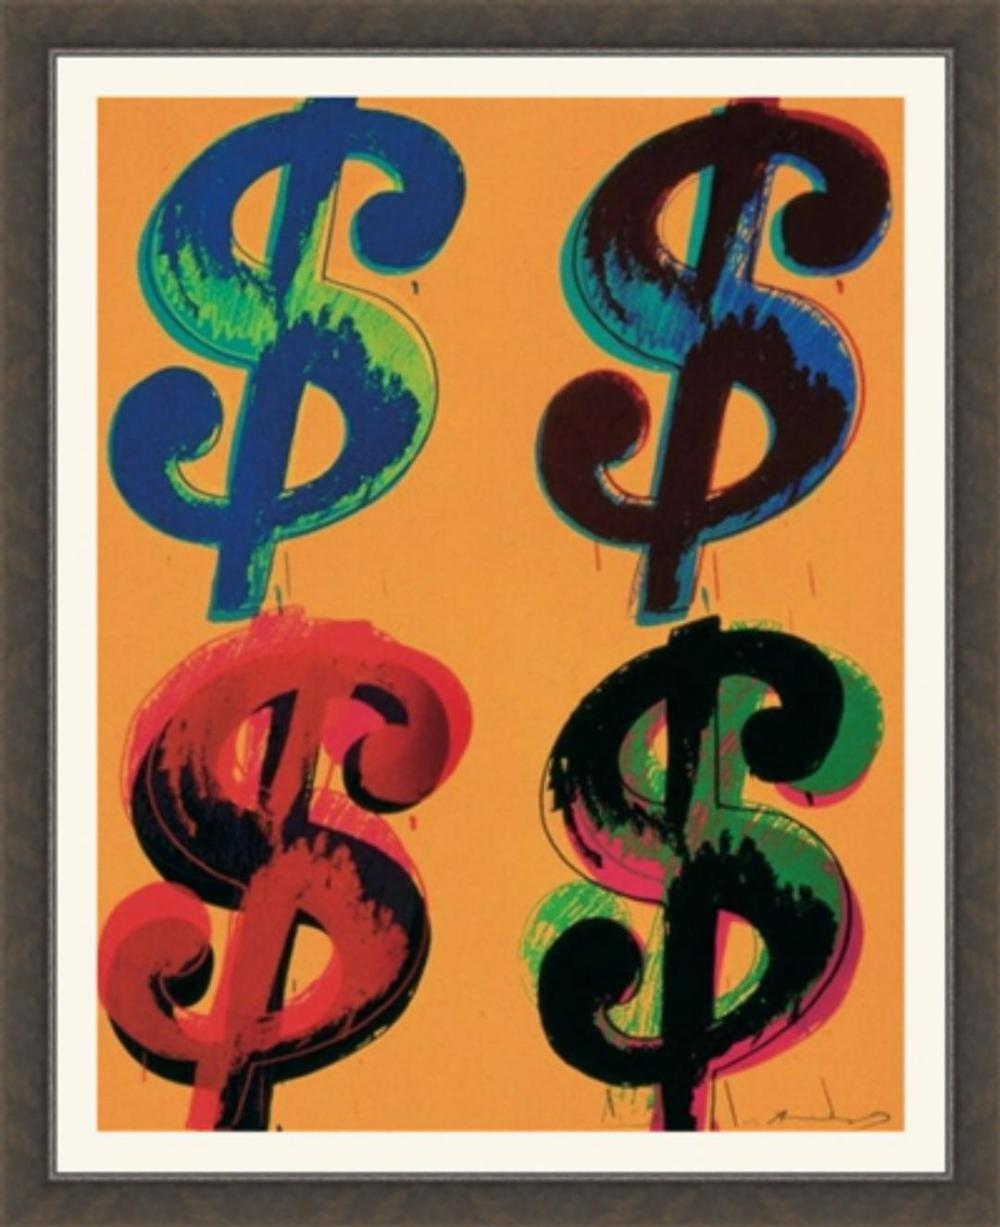 Andy Warhol, Four Dollar Signs (Framed), Art Print Offset Lithograph, 4 $'s